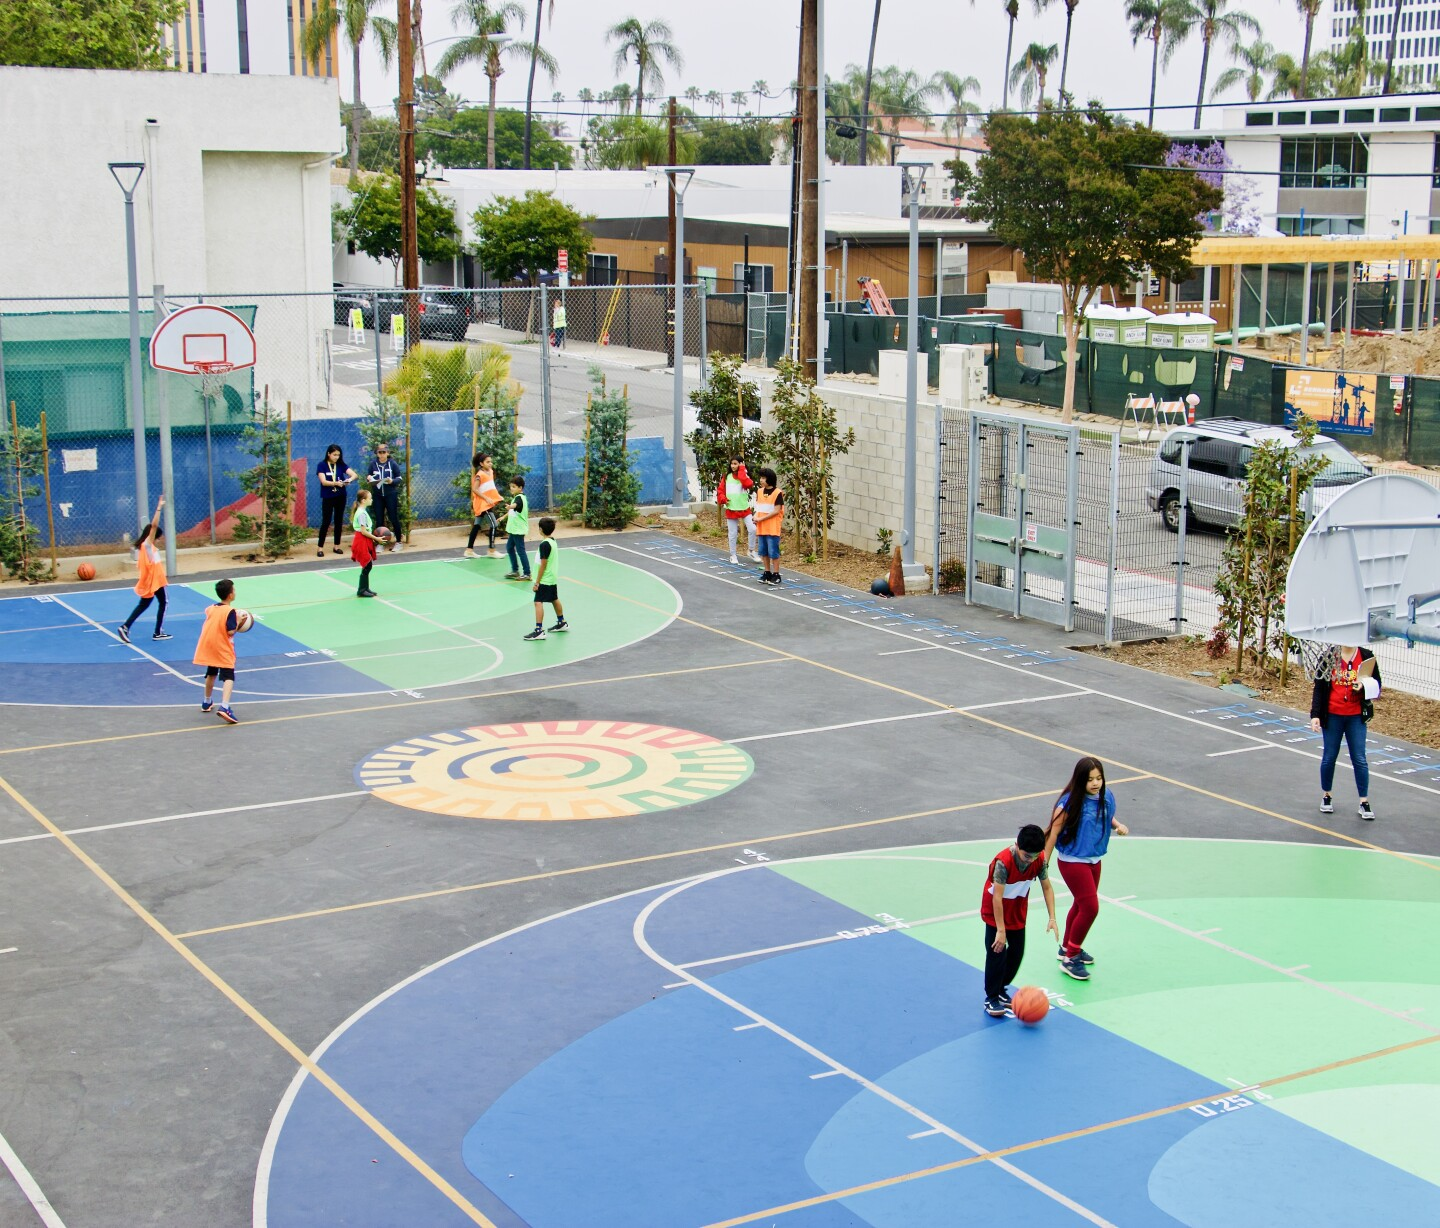 Children play a fraction game on a basketball court.